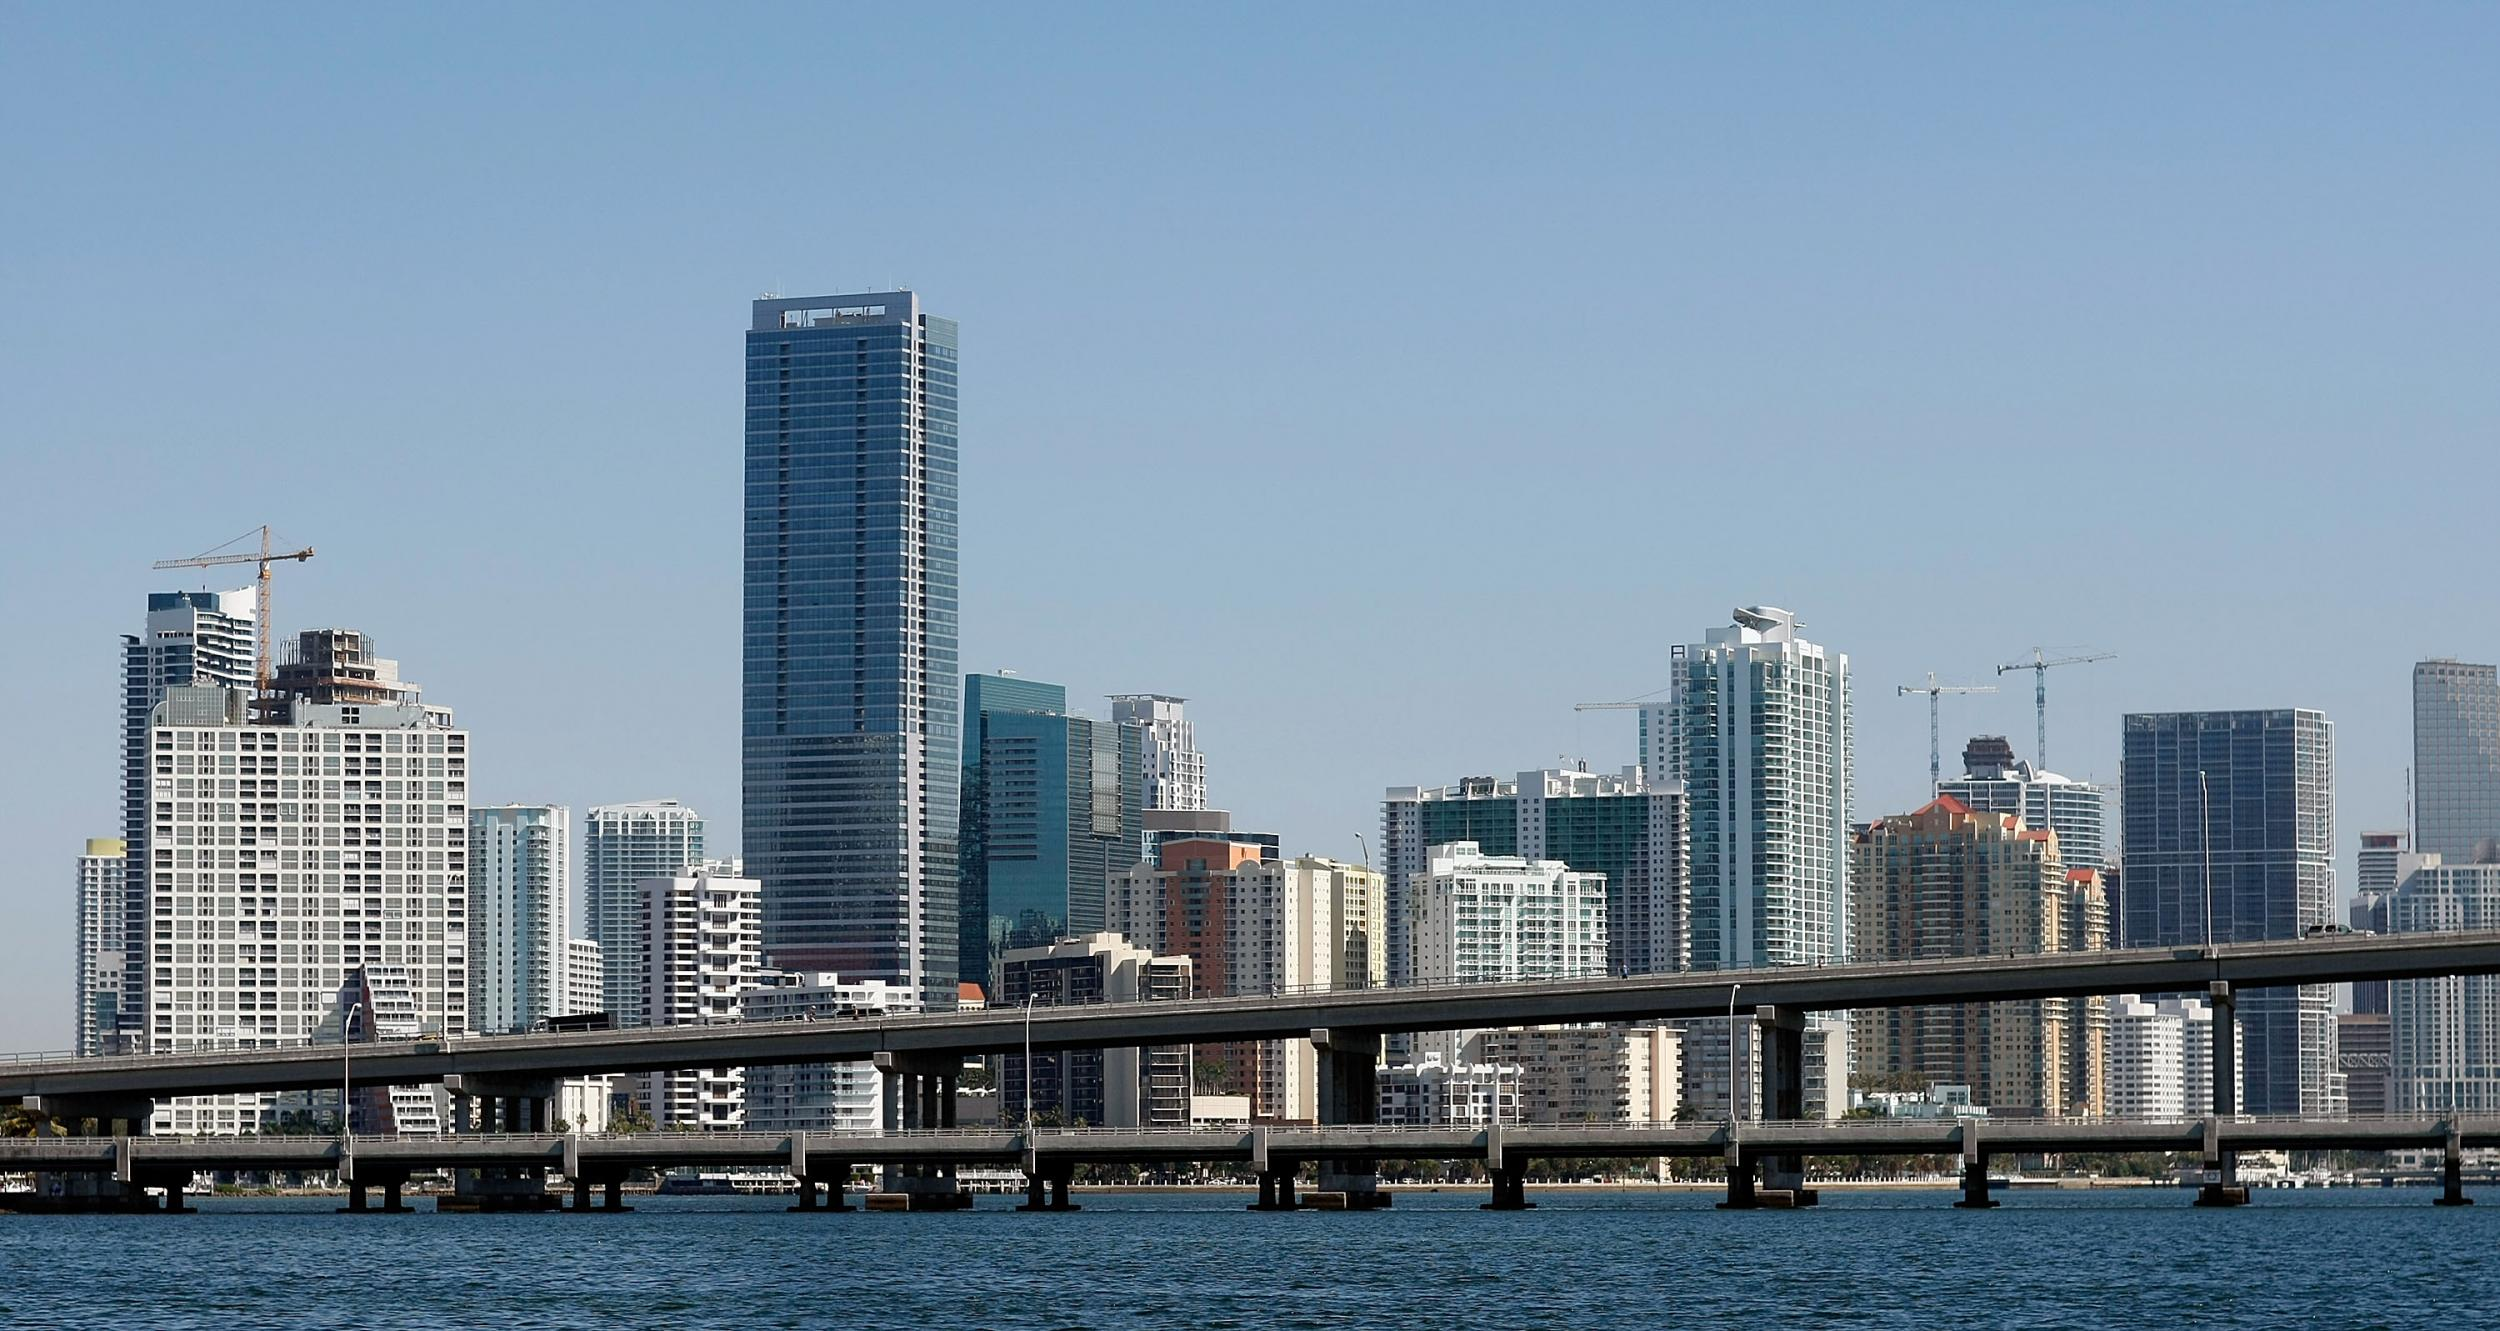 Lockdown: Miami Goes 7 Weeks Without A Murder For First Time Since 1957